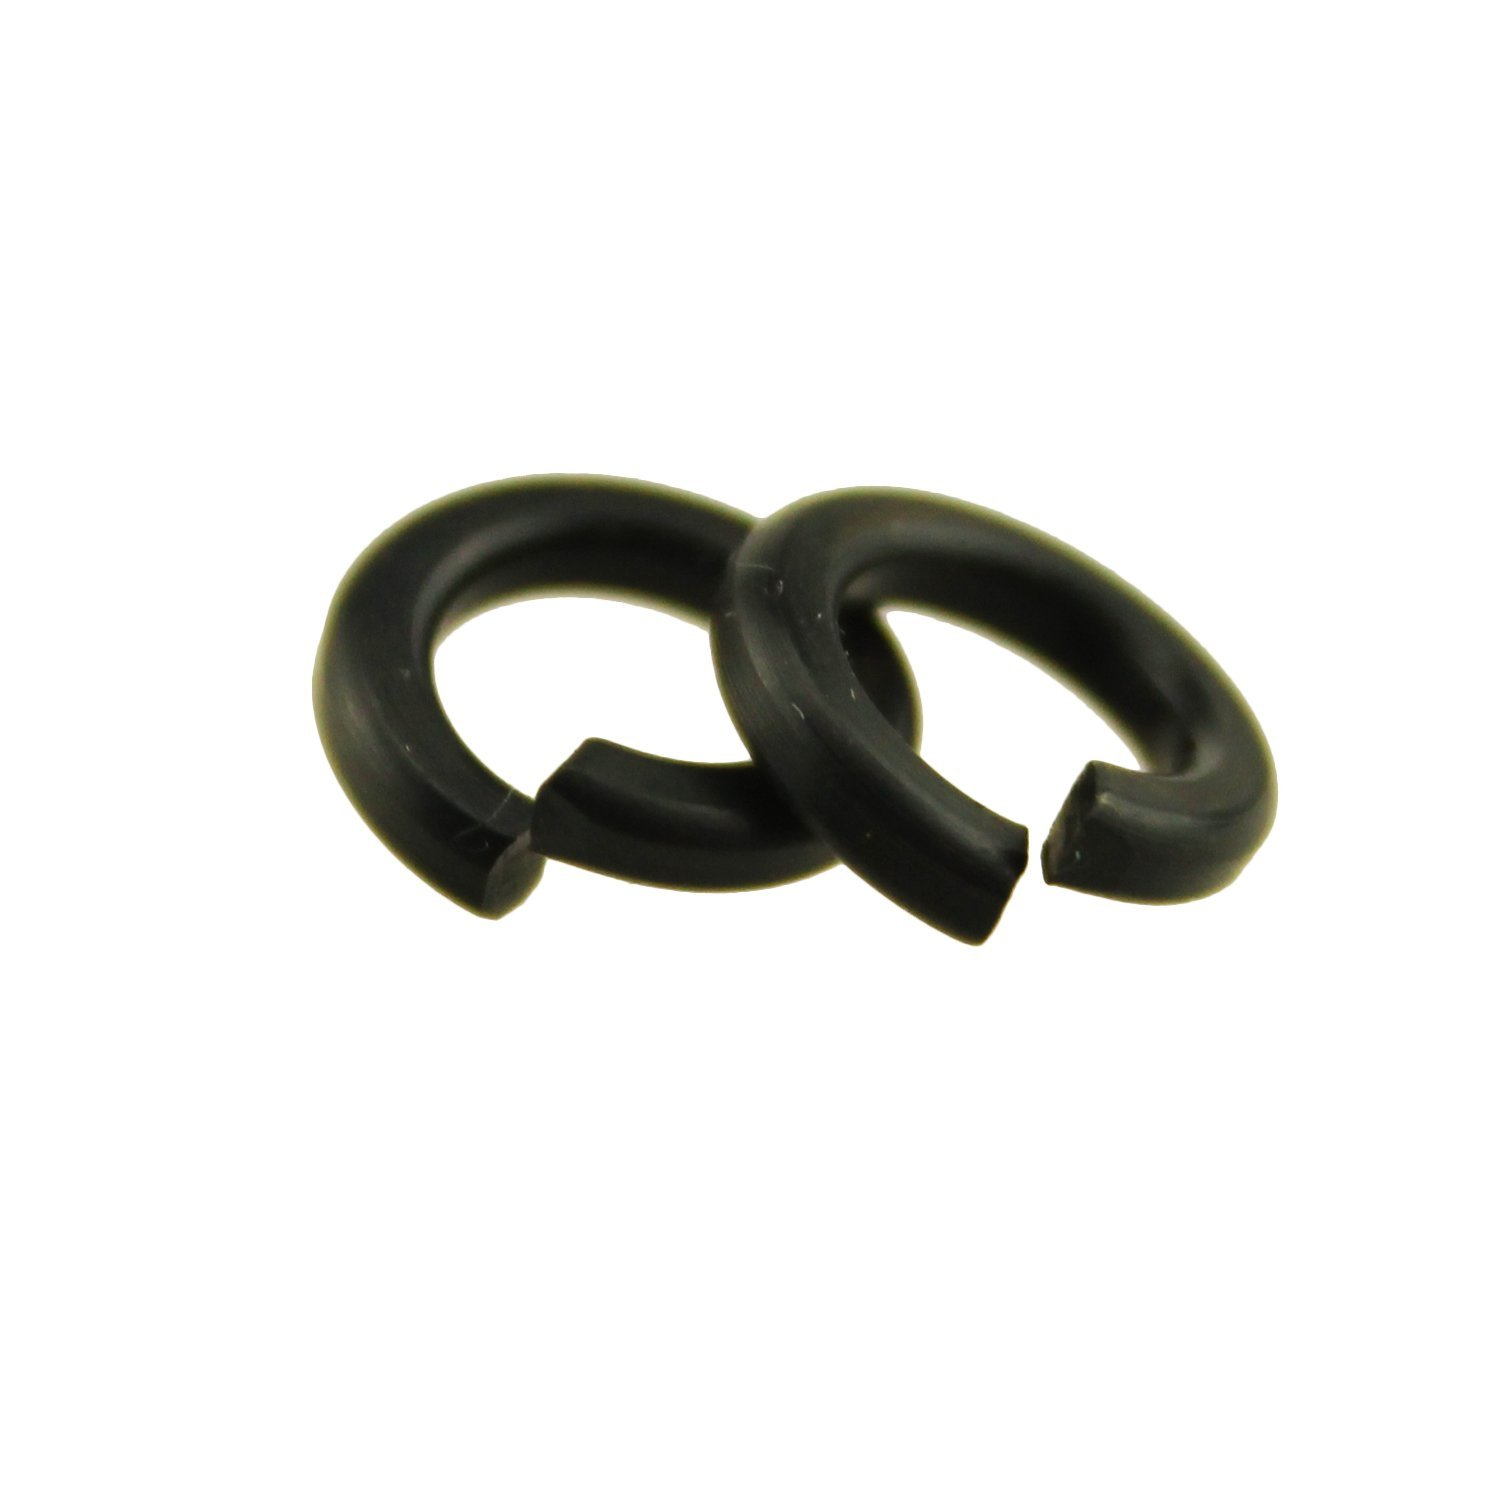 IZTOSS 150PCS M8 Black Oxide Oxidation Carbon Steel Gasket Ring Silver Spring Lock Washer Split Washer